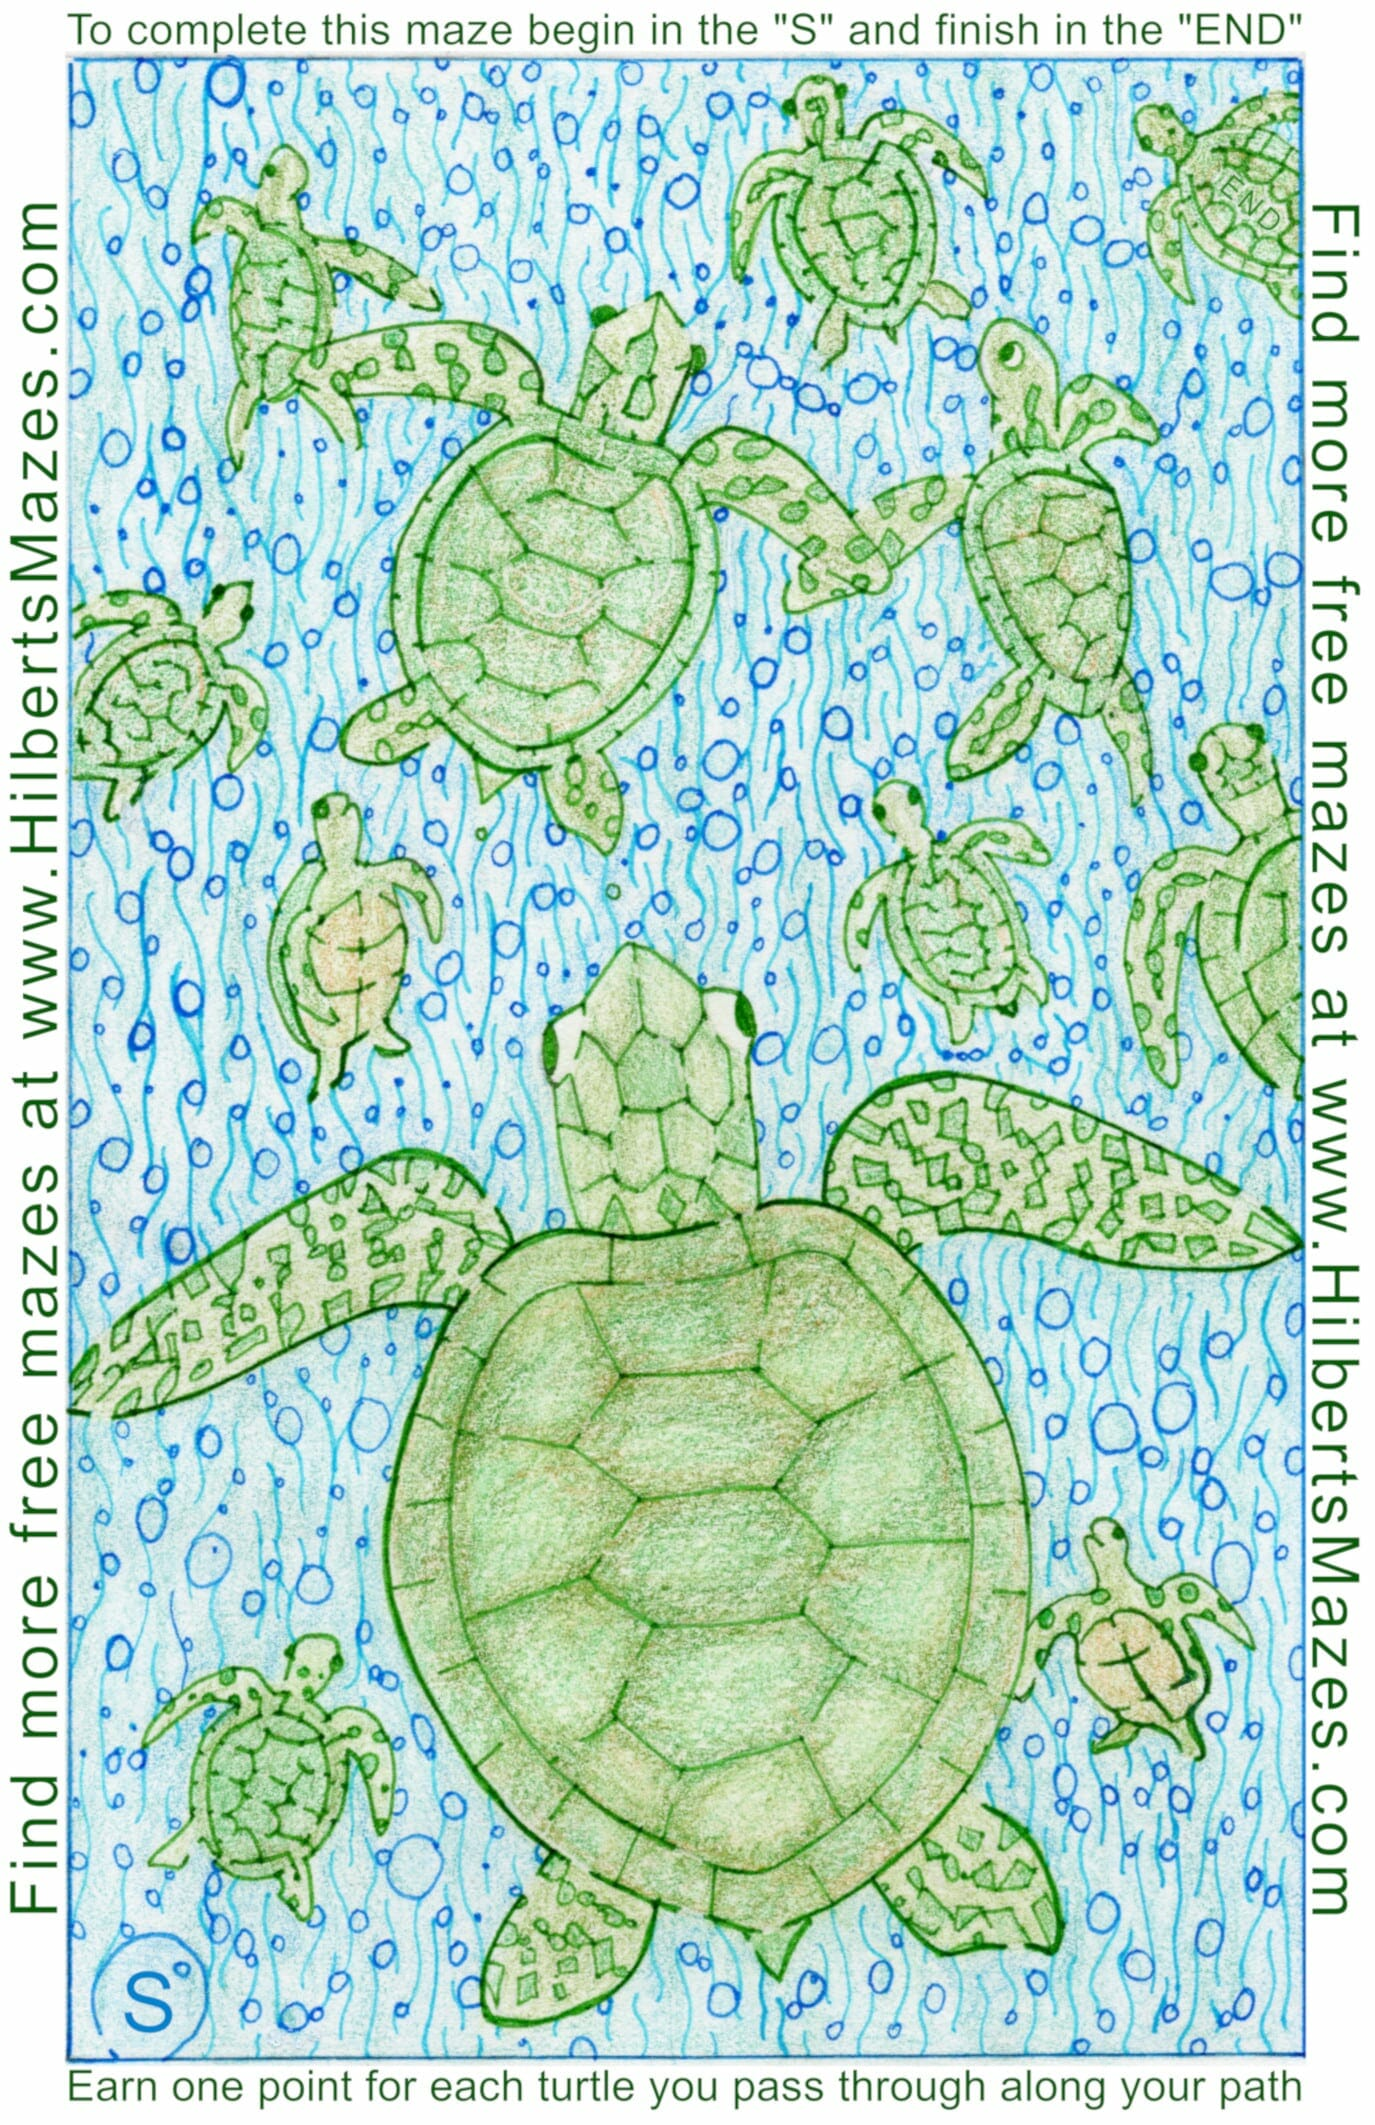 Free Printable Hand Drawn Sea Turtle Maze and Word Puzzle. Easily downloadable free printable PDF format. Great Mazes and Games for both kids & adults very challenging but fun.